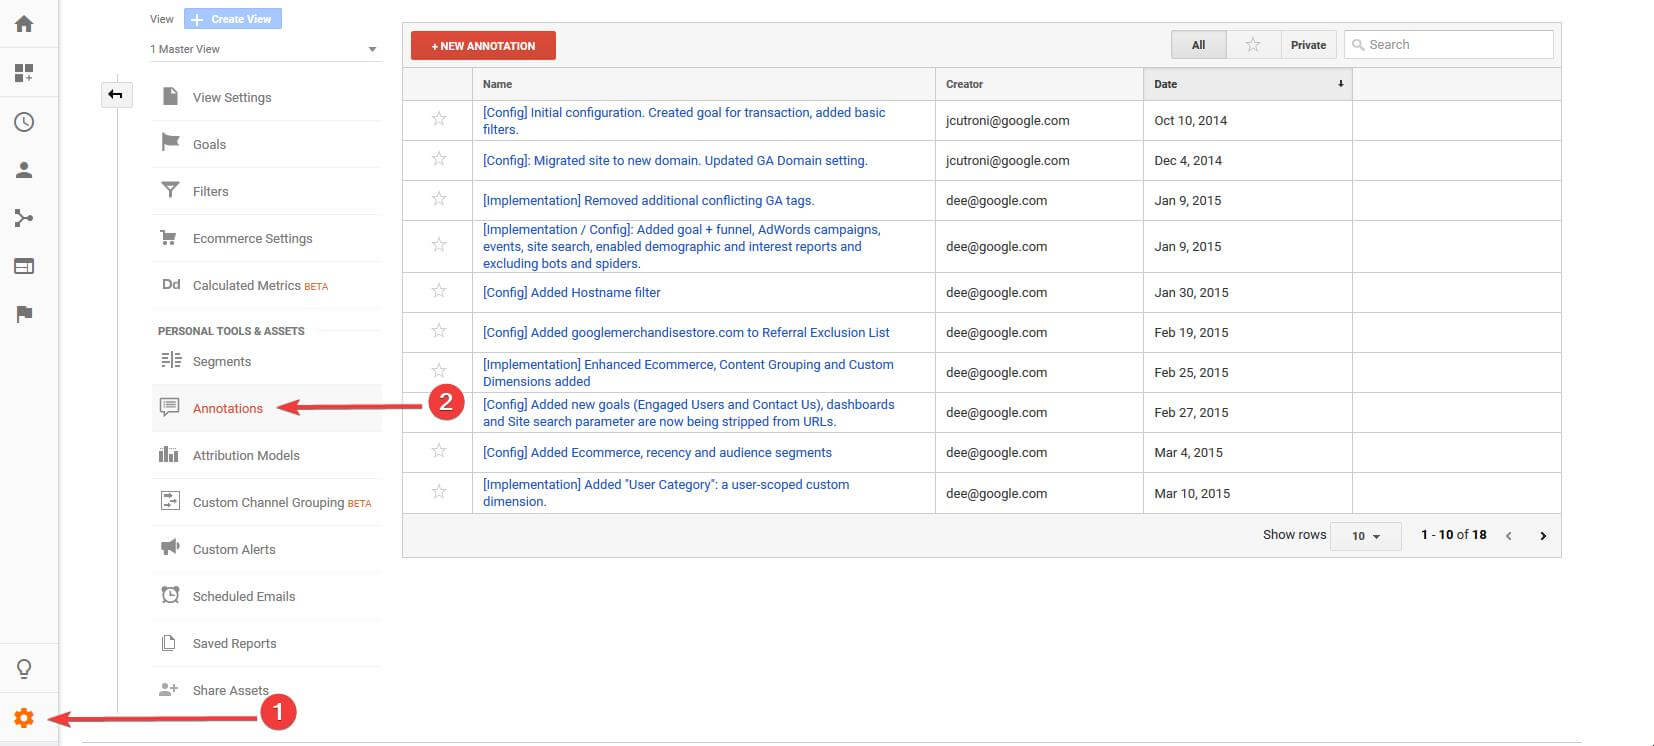 How to View All Google Analytics Annotations